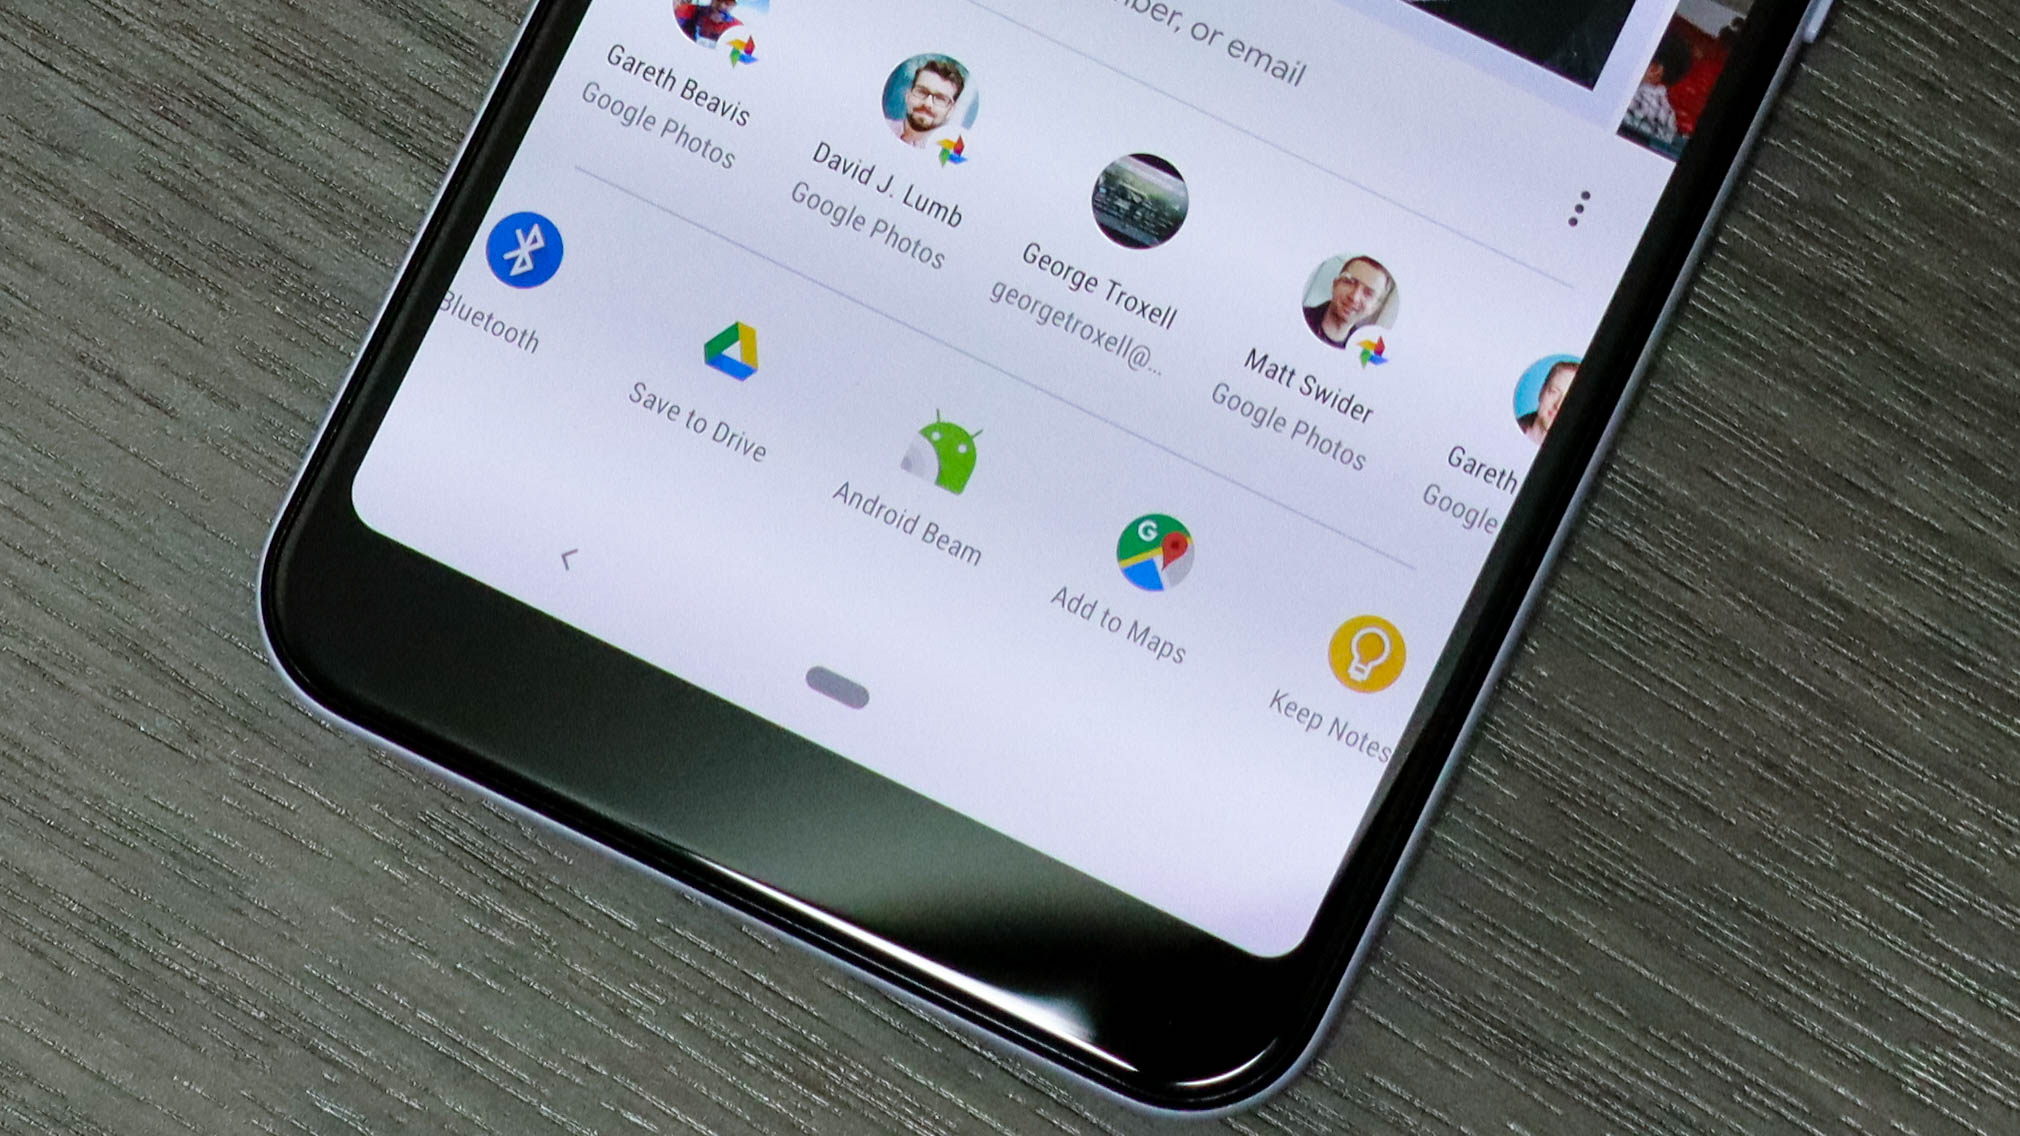 Android Q release date, new features and everything you need to know